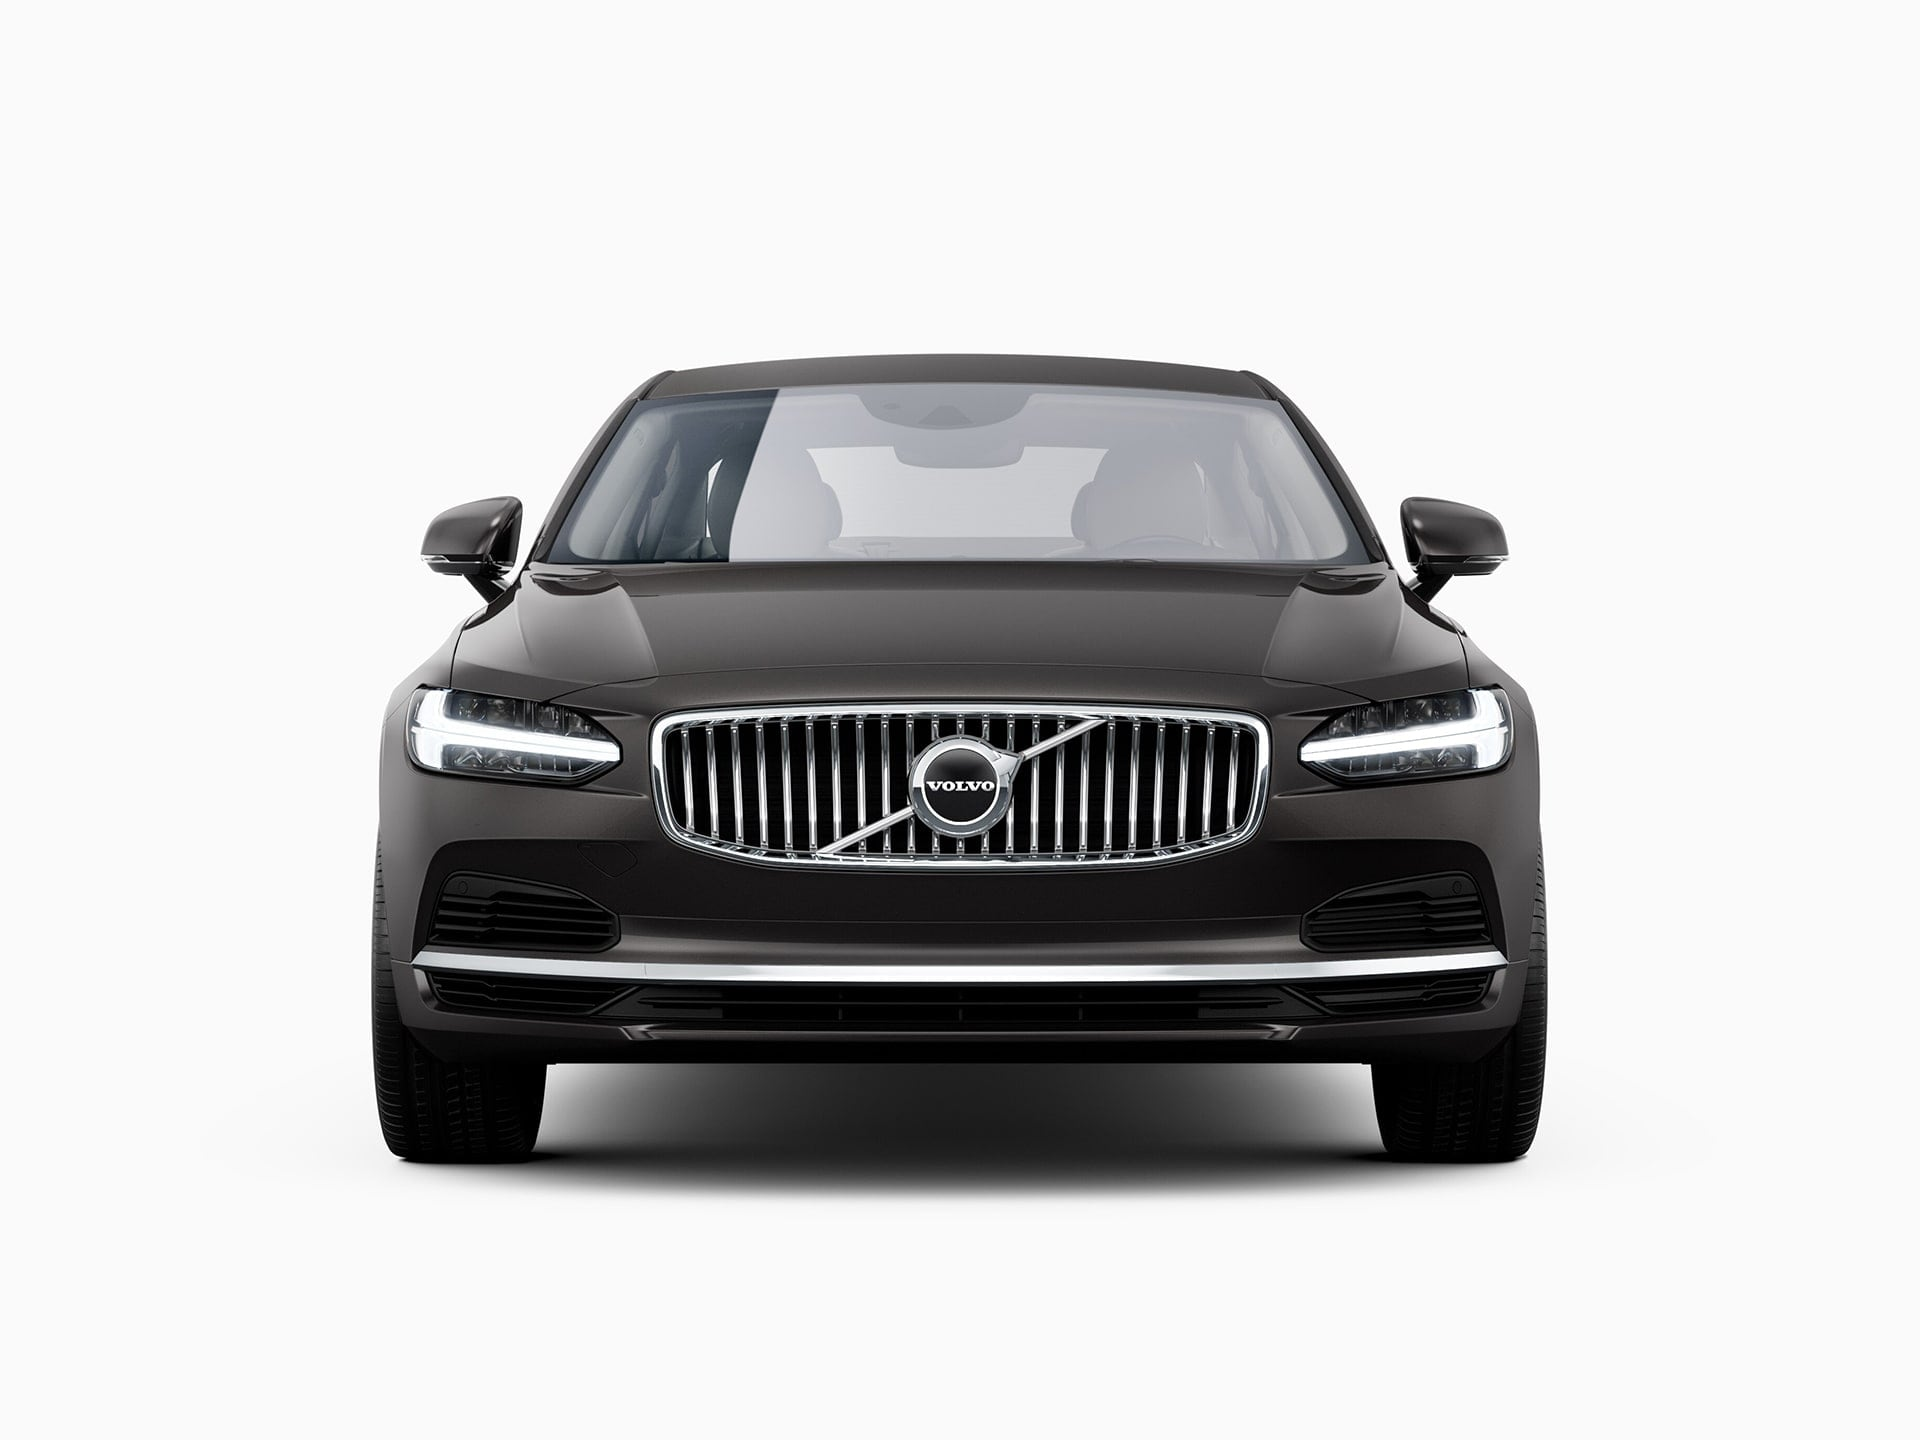 The front of a Volvo S90 Recharge plug-in hybrid sedan.